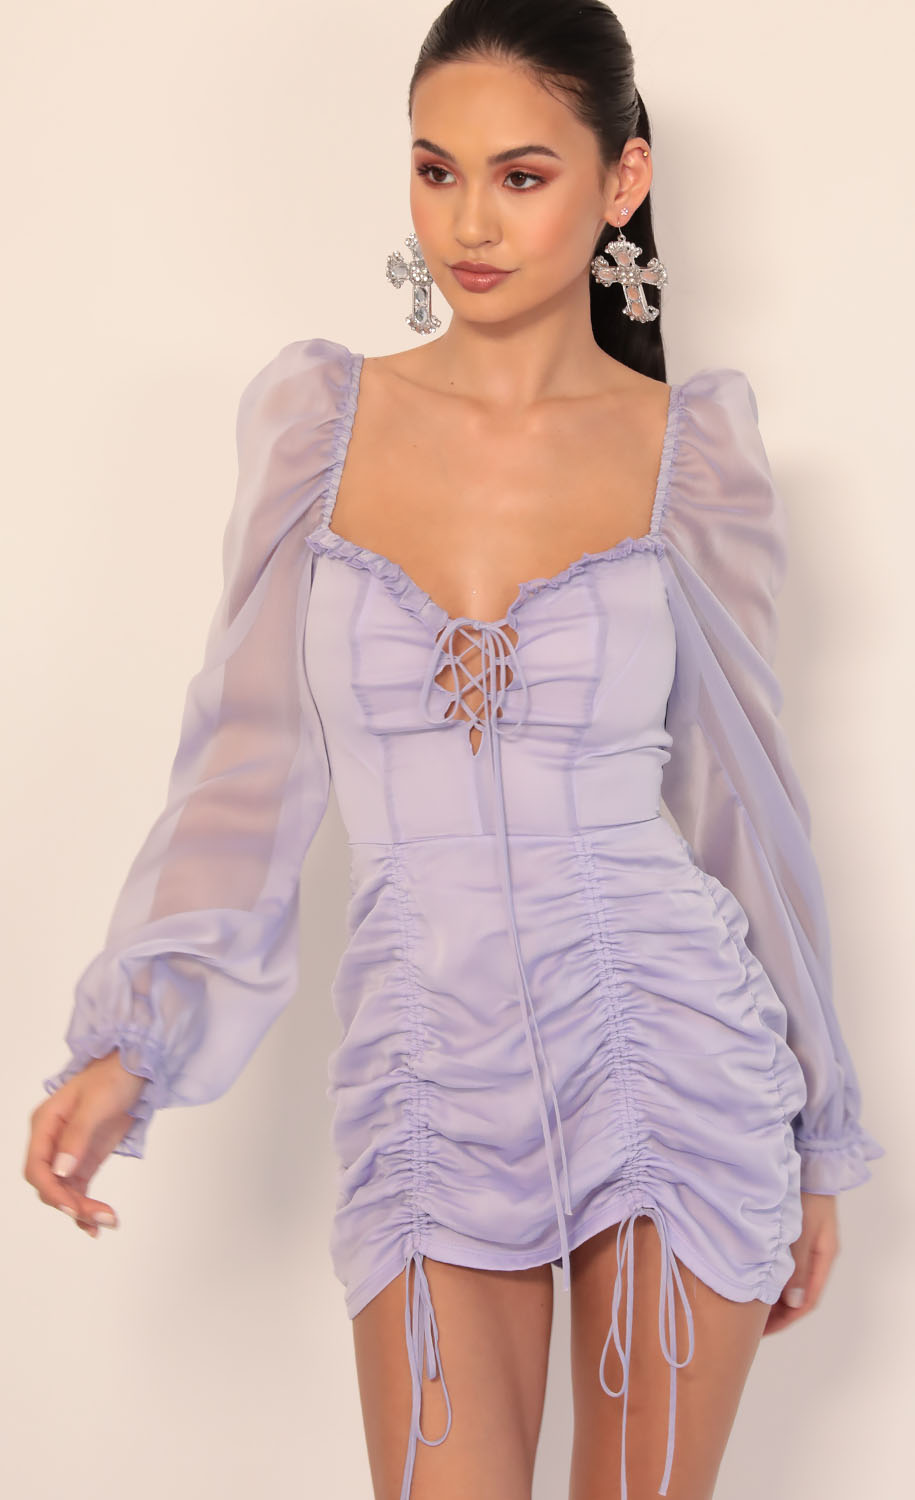 Couture Chiffon Puff Sleeve Dress in Lavender